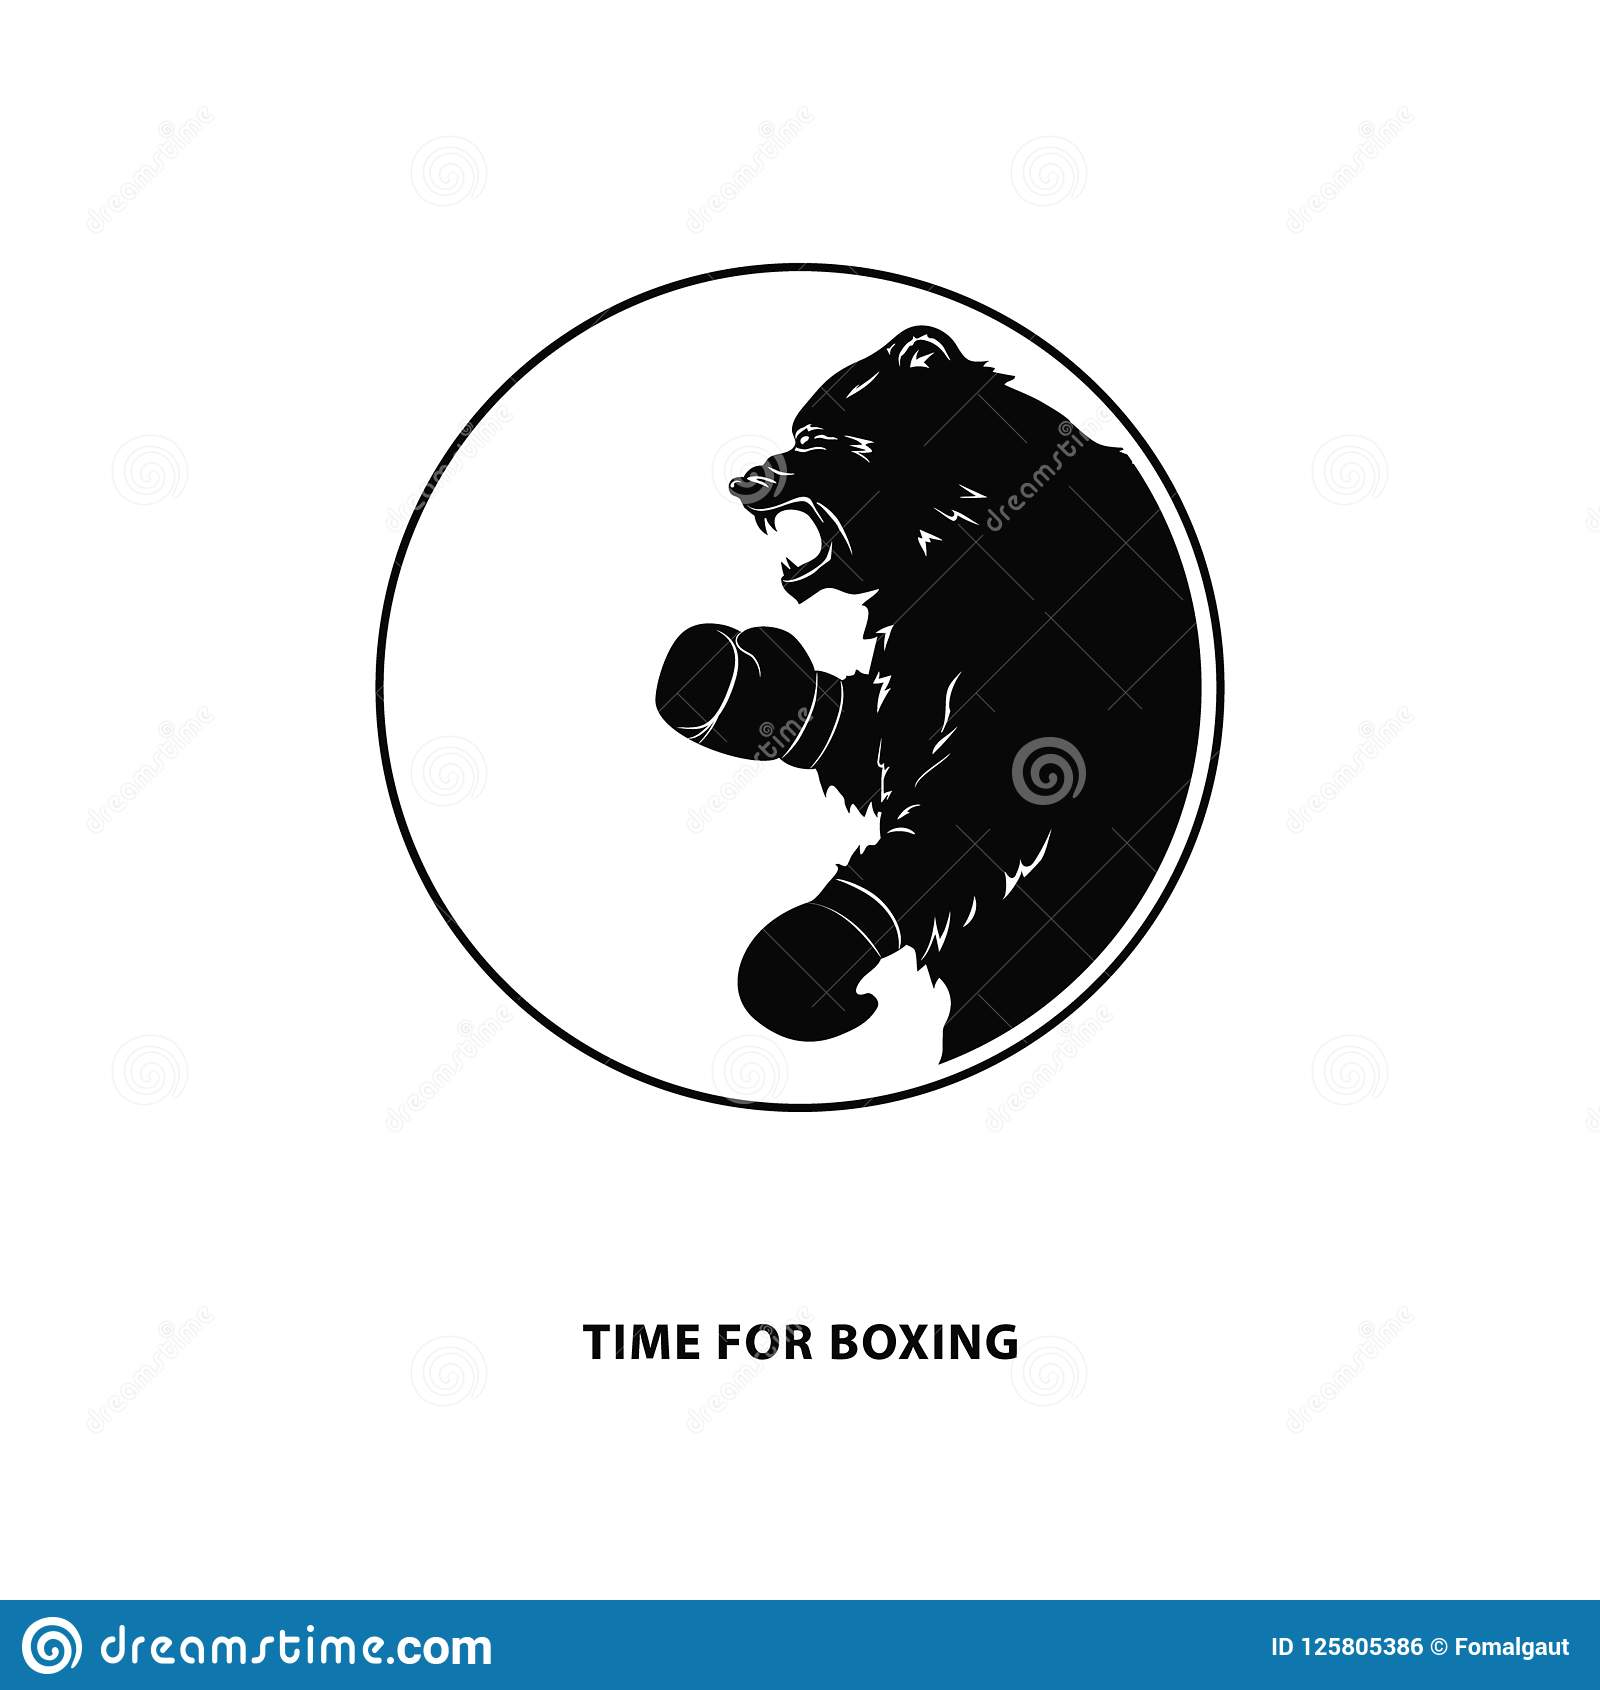 black bear in boxing gloves silhouette of a wild animal round